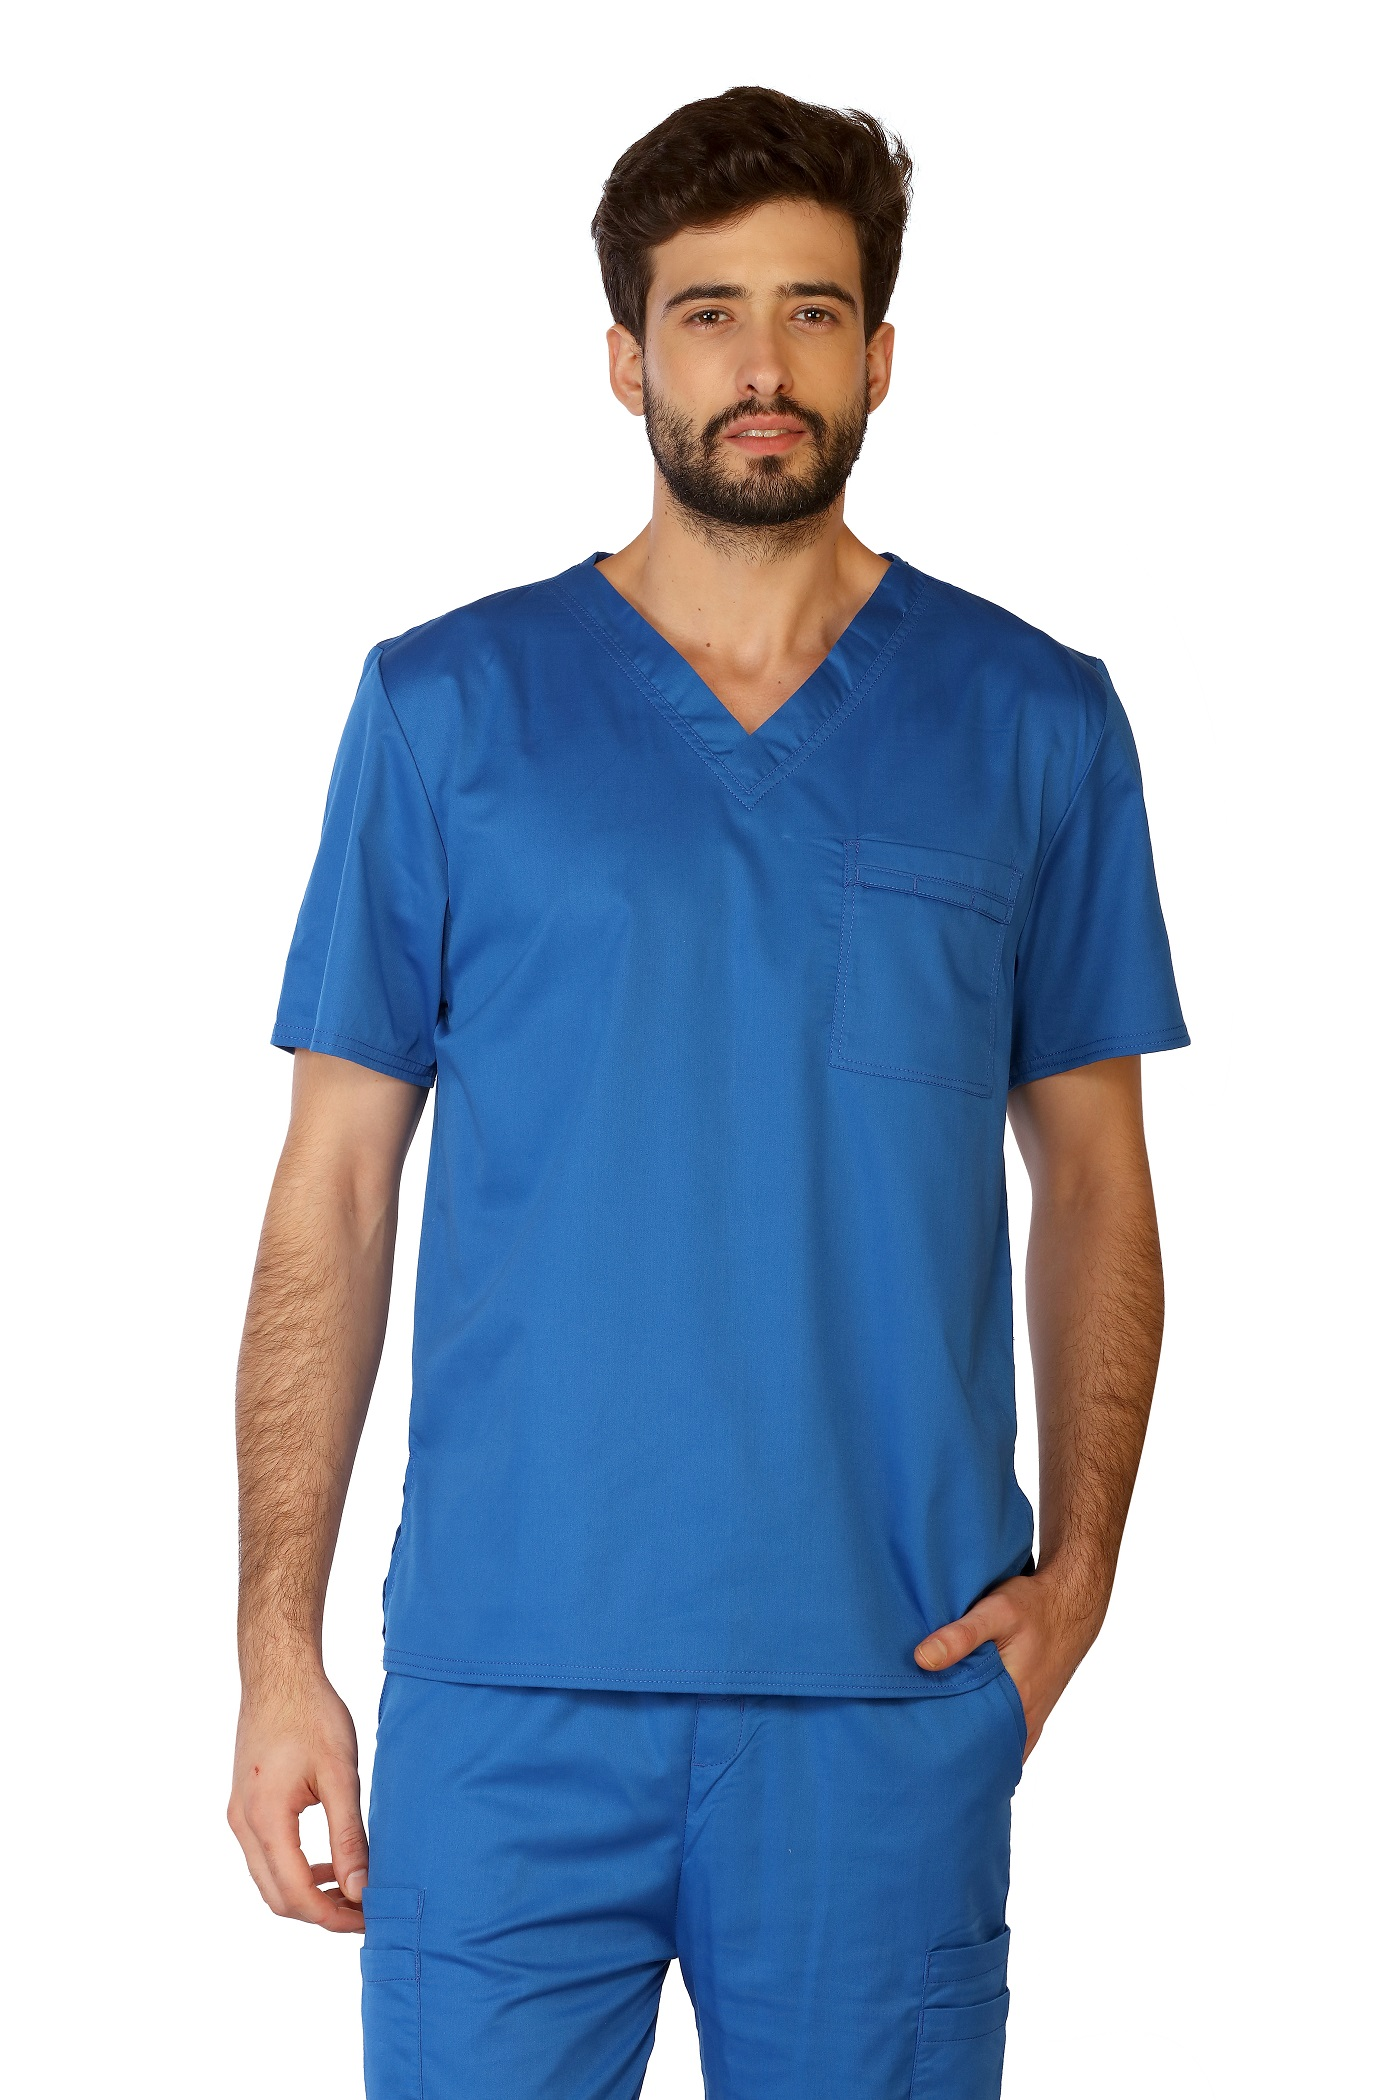 Unisex Stretch Scrub Top, LifeThreads Contego Collection-LifeThreads